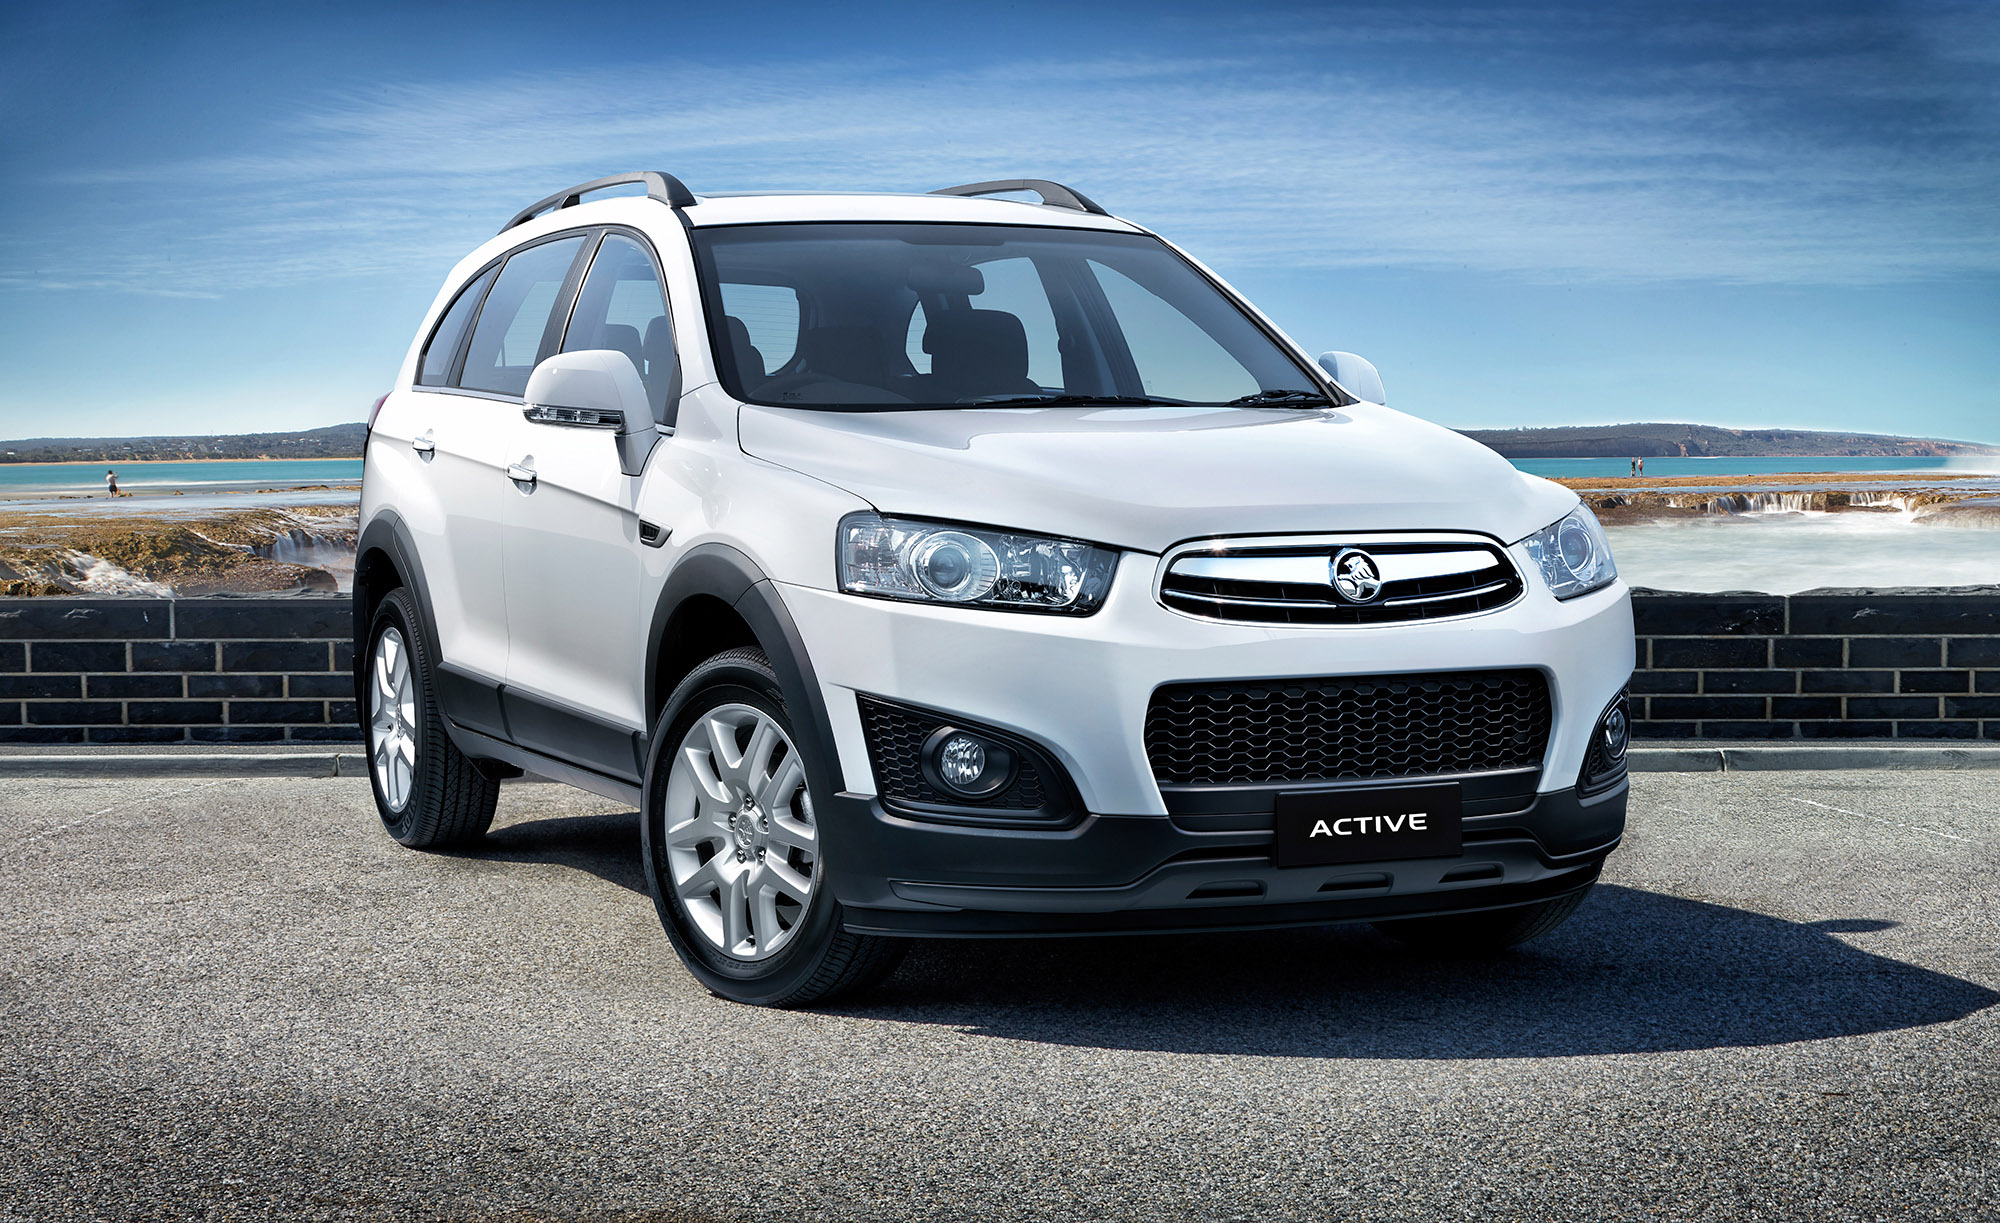 Holden Captiva Active Special Edition photo #1